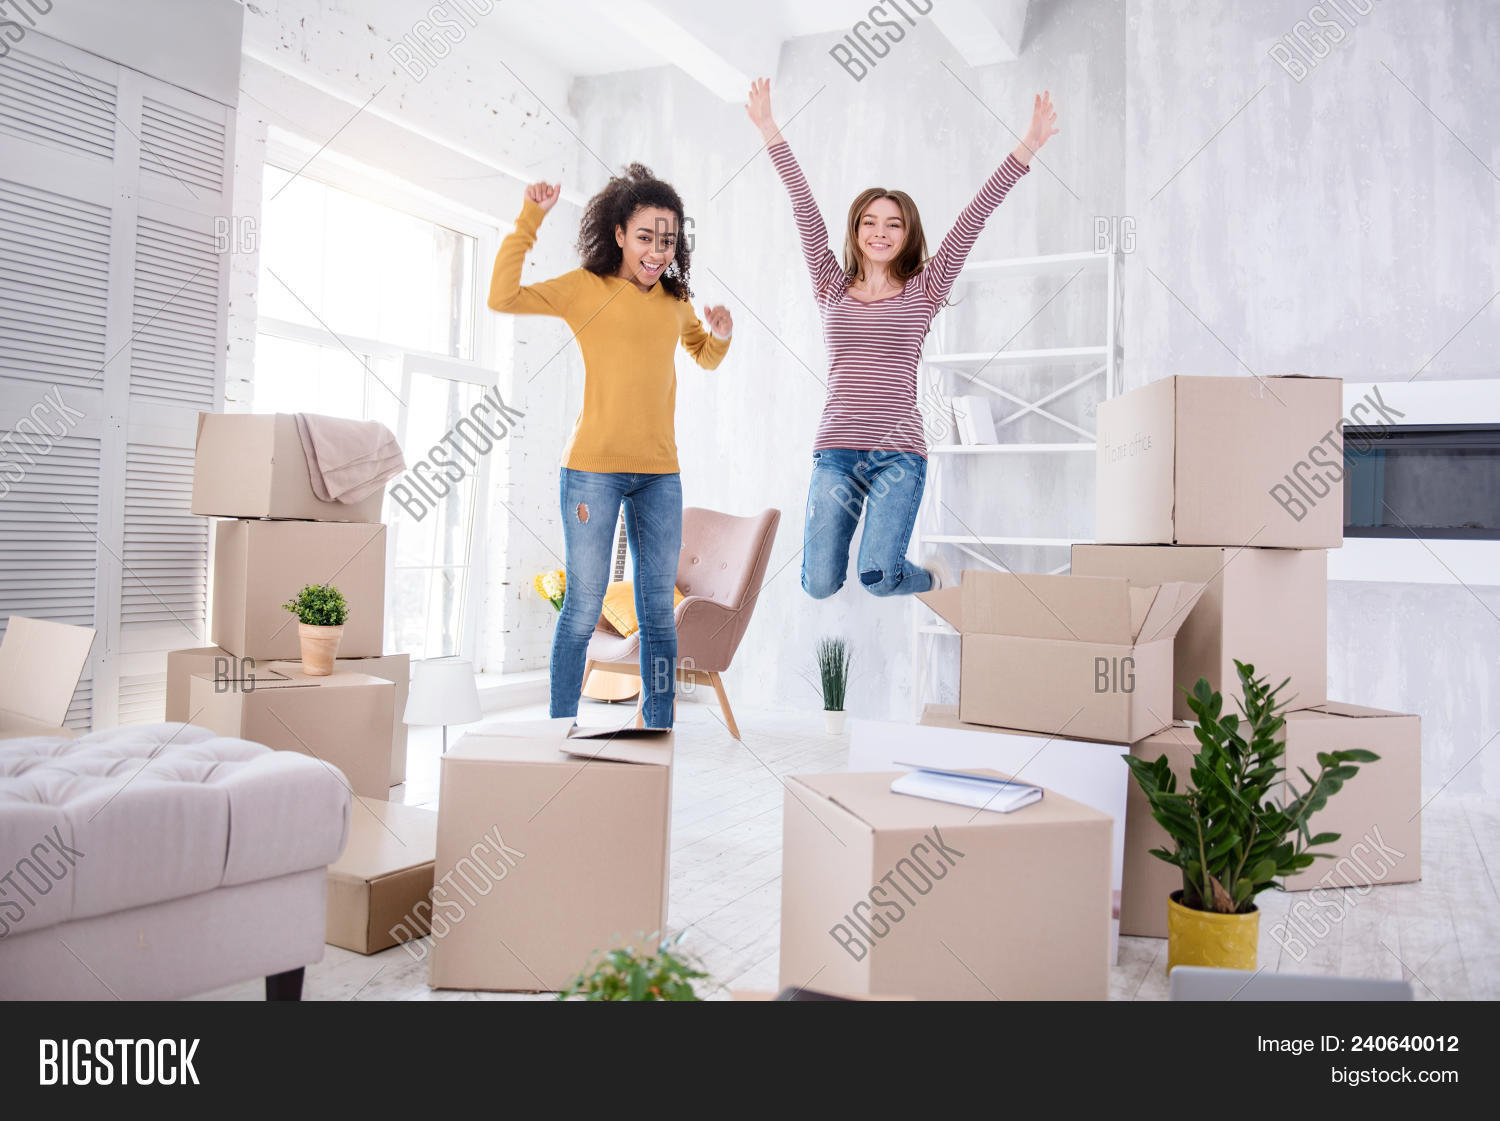 apartment,belongings,box,cartons,celebration,cohabitant,cohabitation,cost,domestic,dwelling,estate,expenses,flat,friends,full,girls,habitation,happy,homeowner,house,household,housing,in,independence,insurance,interior,jump,landlord,length,lifestyle,loan,move,moving,owner,ownership,packing,property,real,relocation,removal,renovation,rent,rental,renter,renting,residence,residential,roommate,unpacking,warming